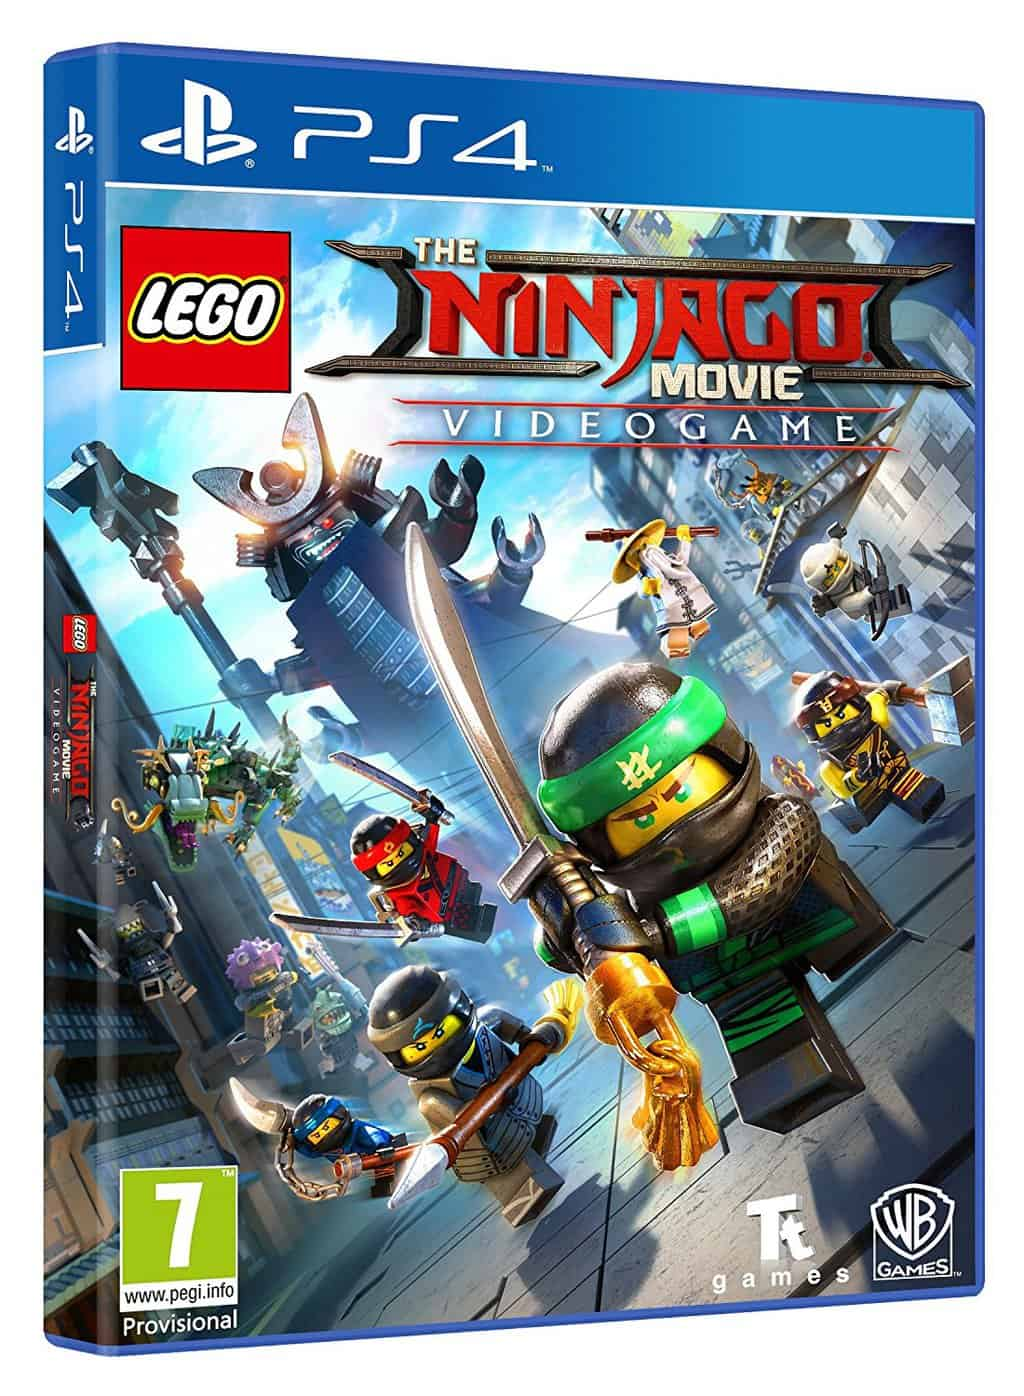 The LEGO Ninjago Video Game - Tired Mummy of two